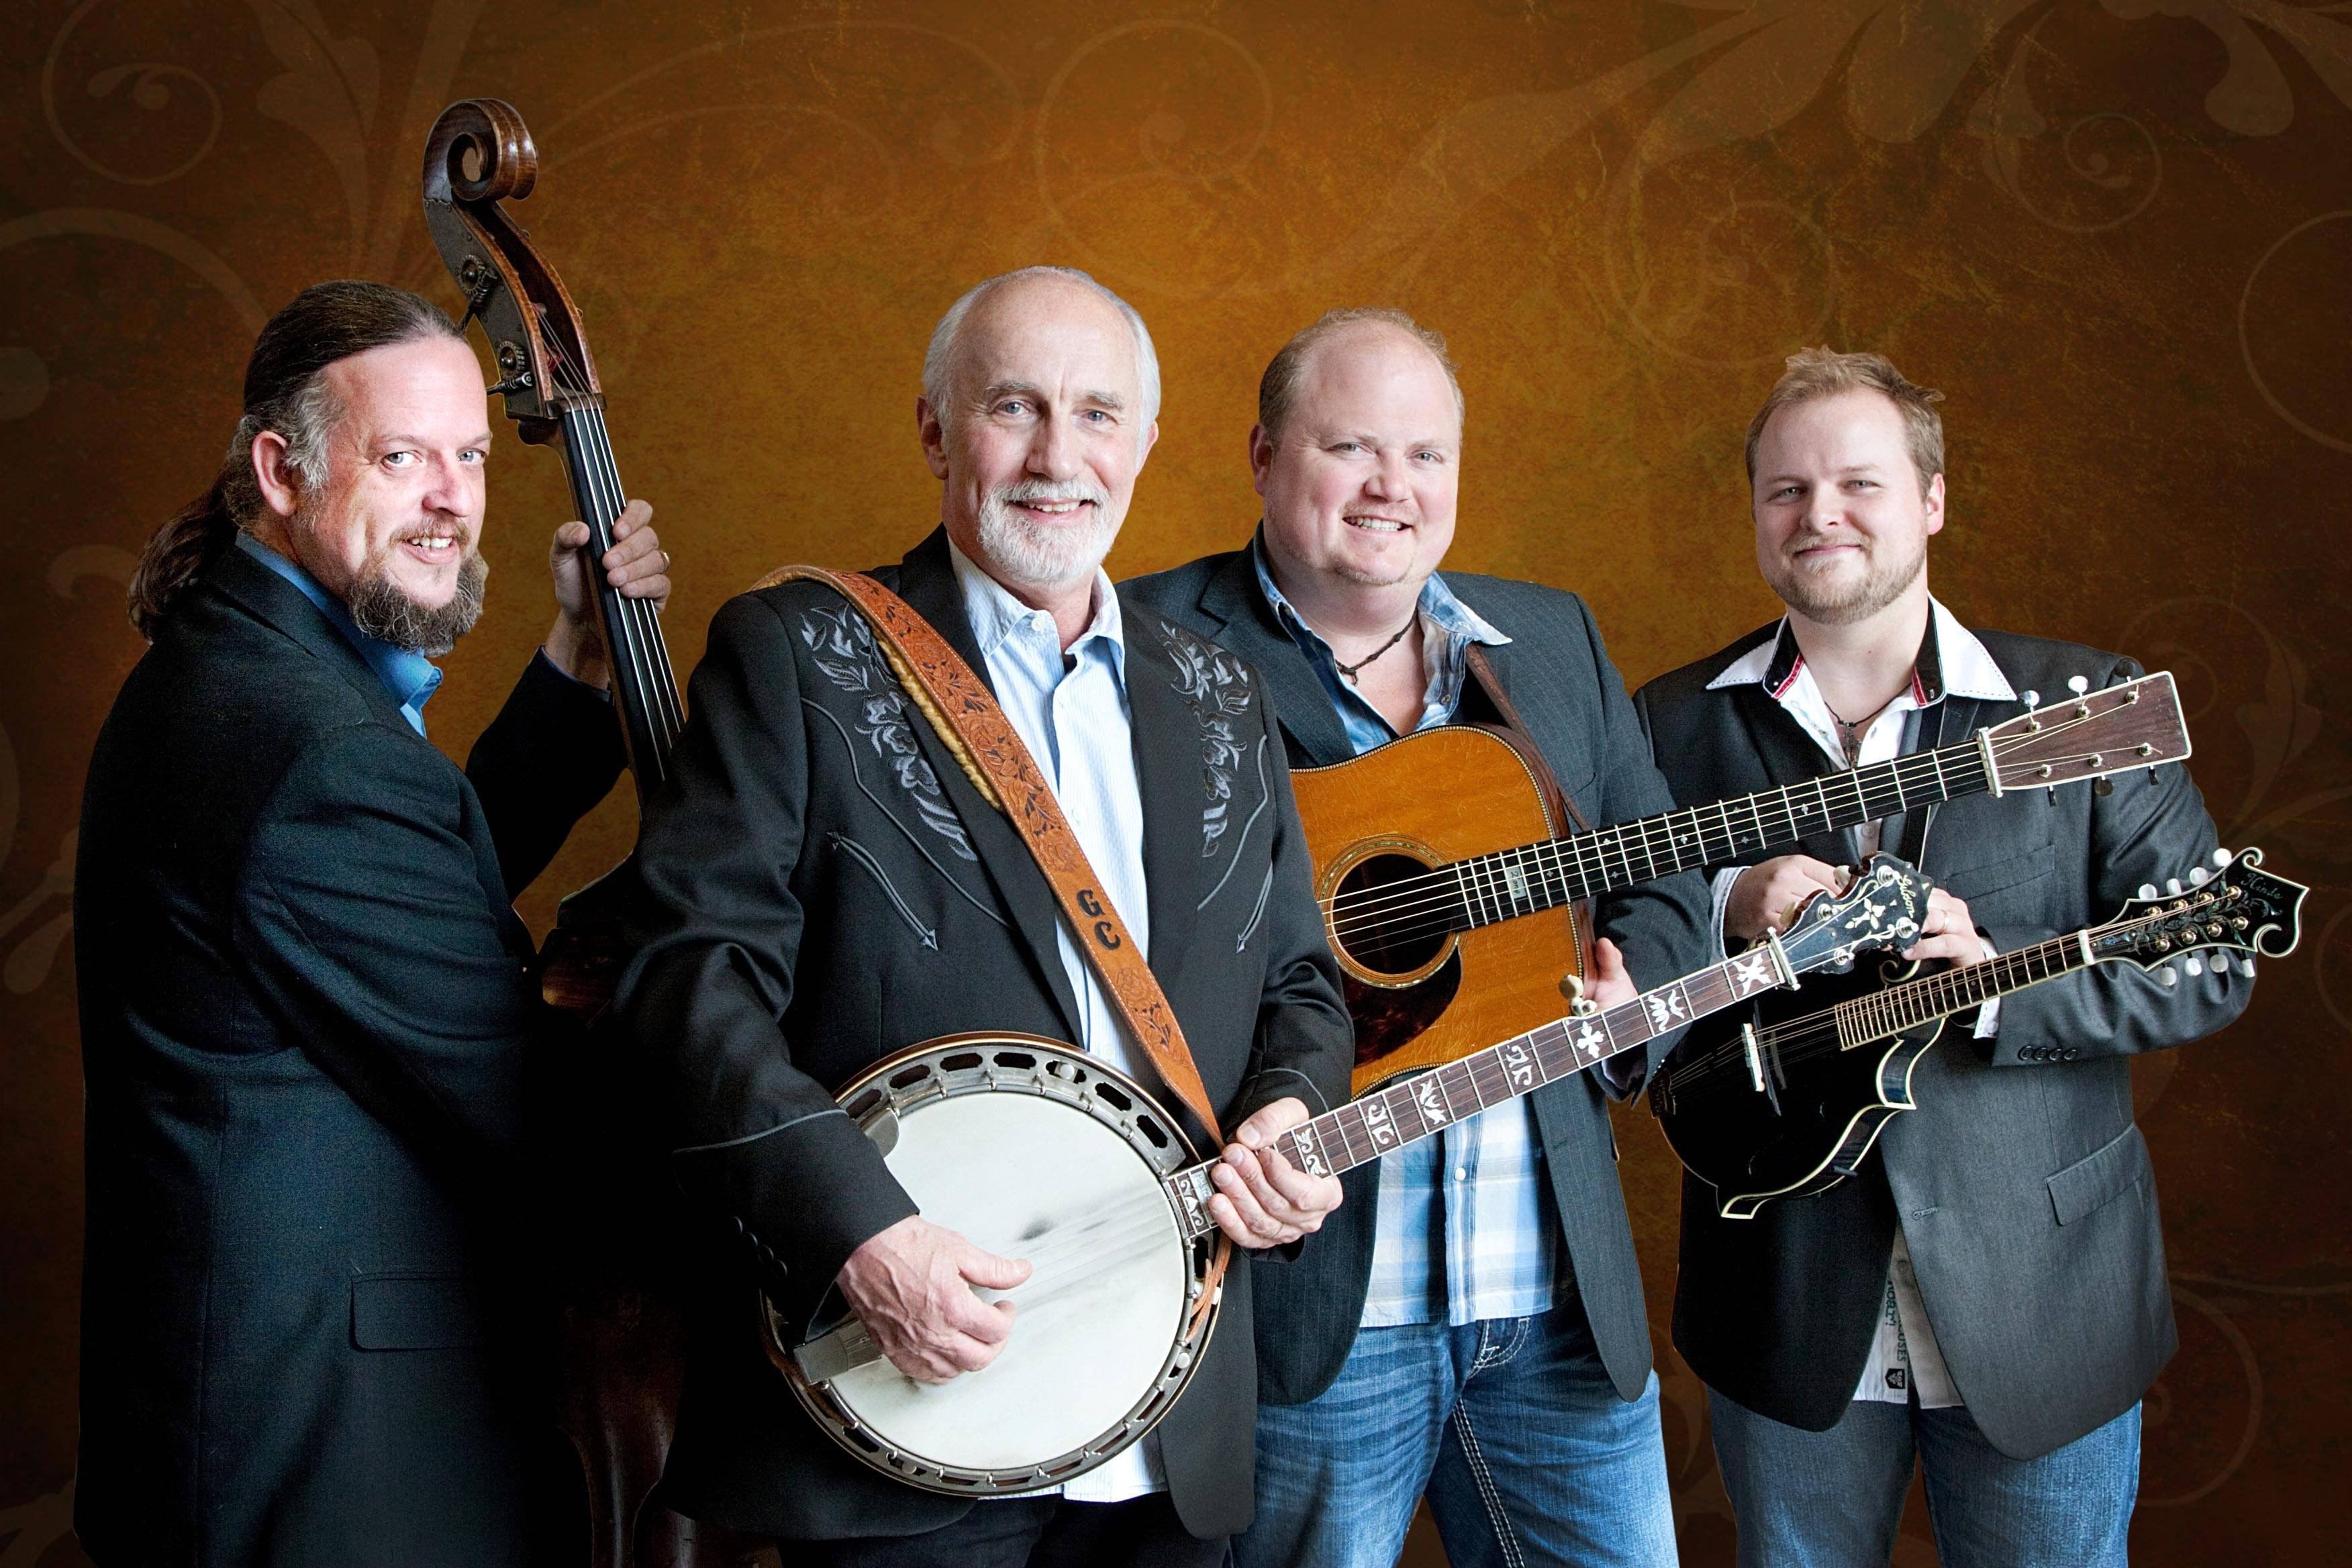 The Special Consensus, a Grammy-nominated four-person acoustic bluegrass band, will perform at The Holmstad July 11.